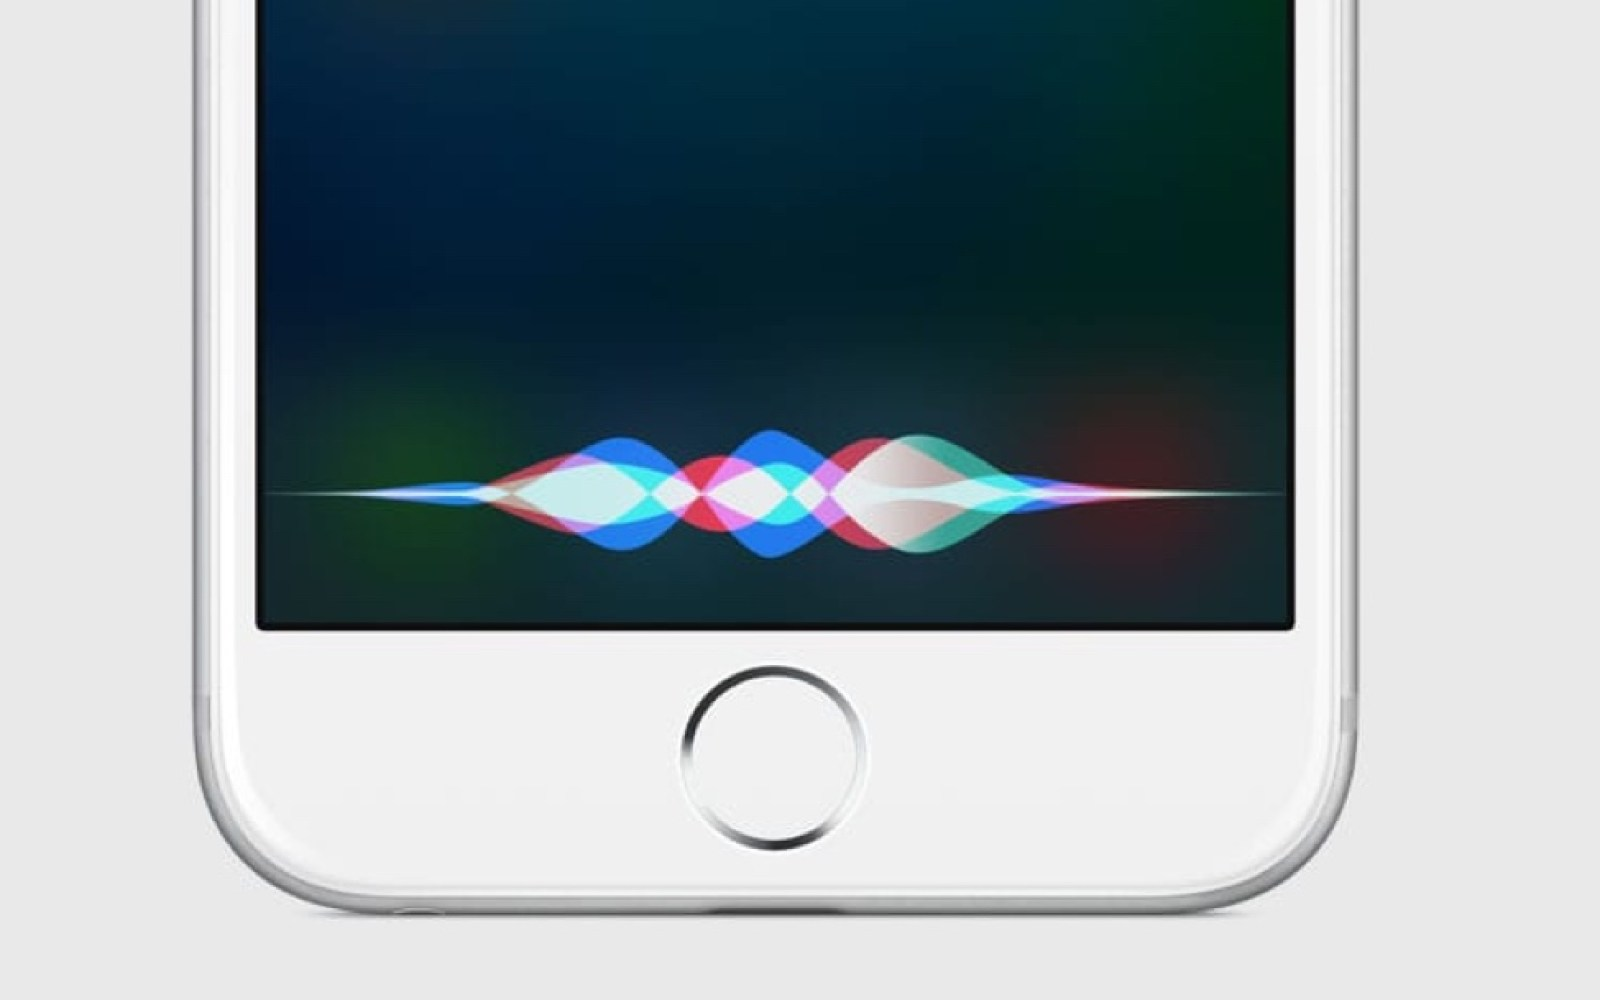 Apple recently fixed some Siri flaws, says it focuses on enhancing common queries